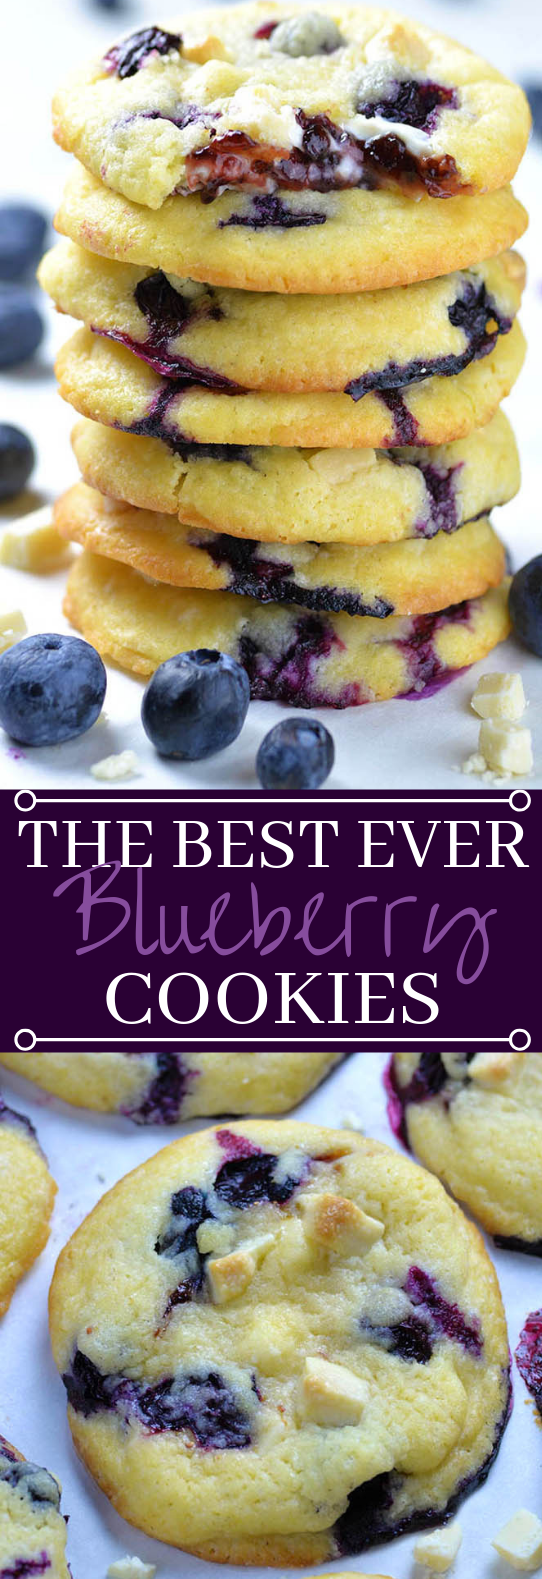 Best Ever Blueberry Cookies #cookies #recipes